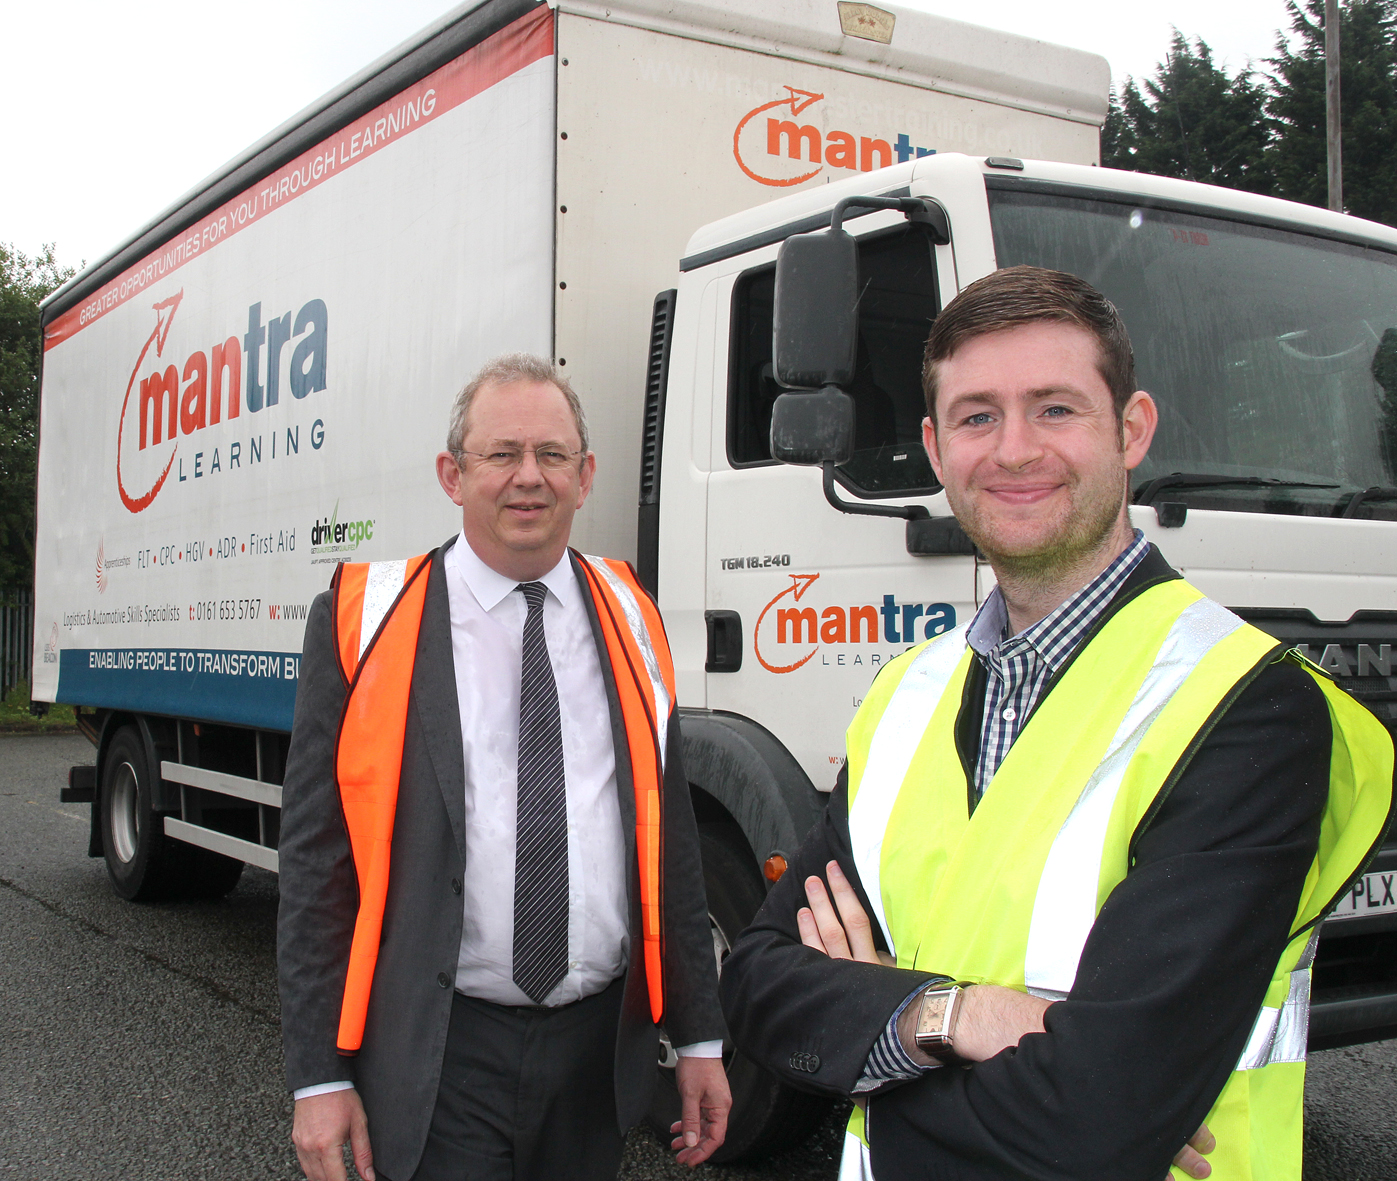 Councillor Jim McMahon, Oldham Council Leader (right) with Richard Weston, Mantra Learning Limited's Marketing Manager.